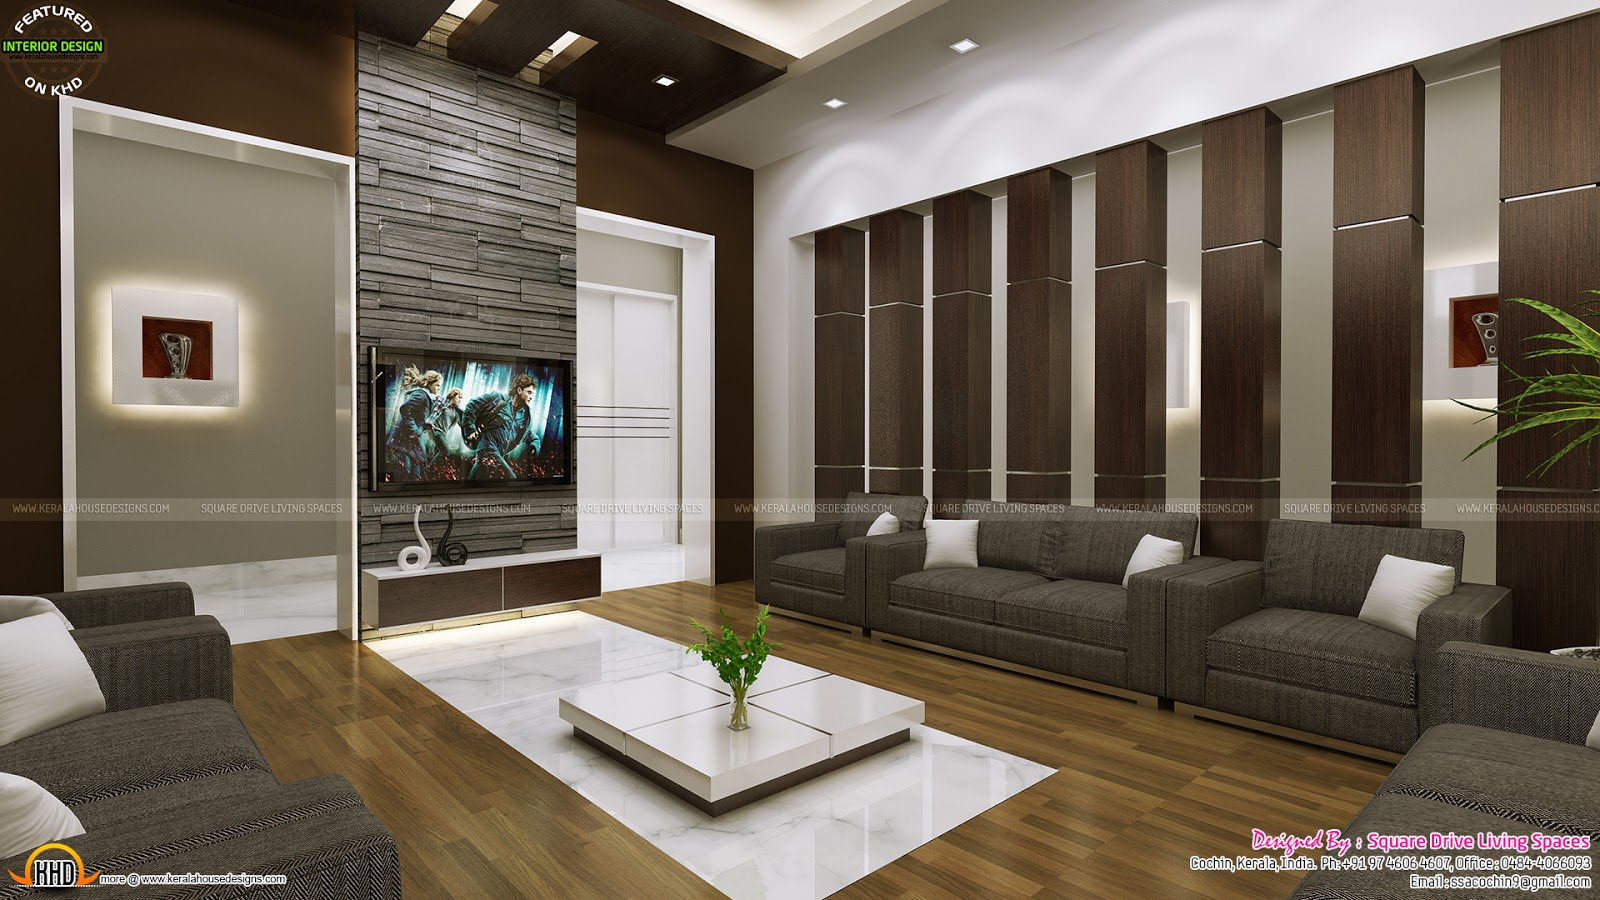 Attractive home interior ideas kerala home design and for Attractive home designs